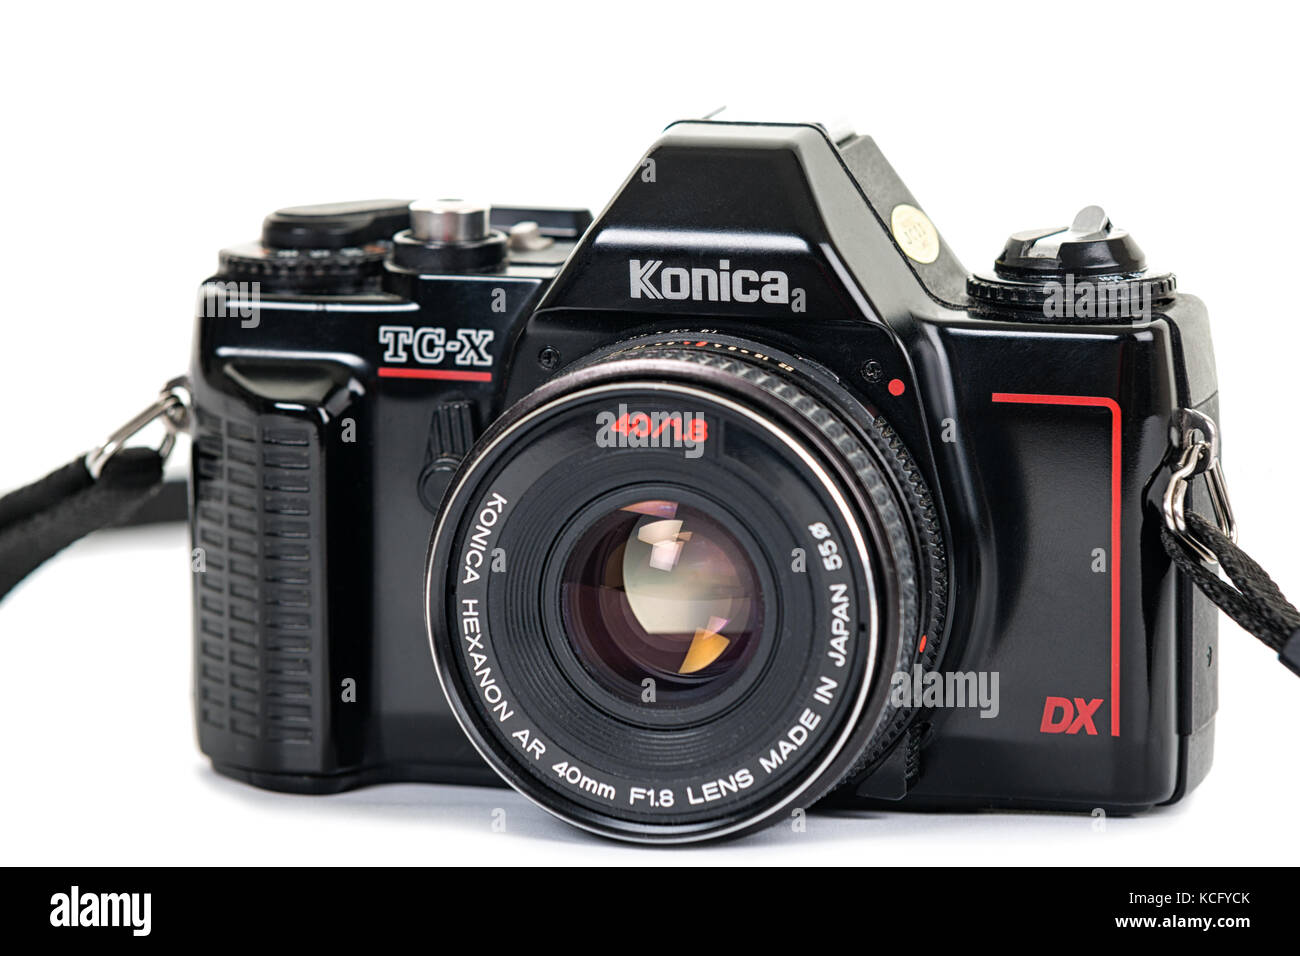 Black Konica TC-X analogue SLR camera with Konica Hexanon AR 40mm f/1.8